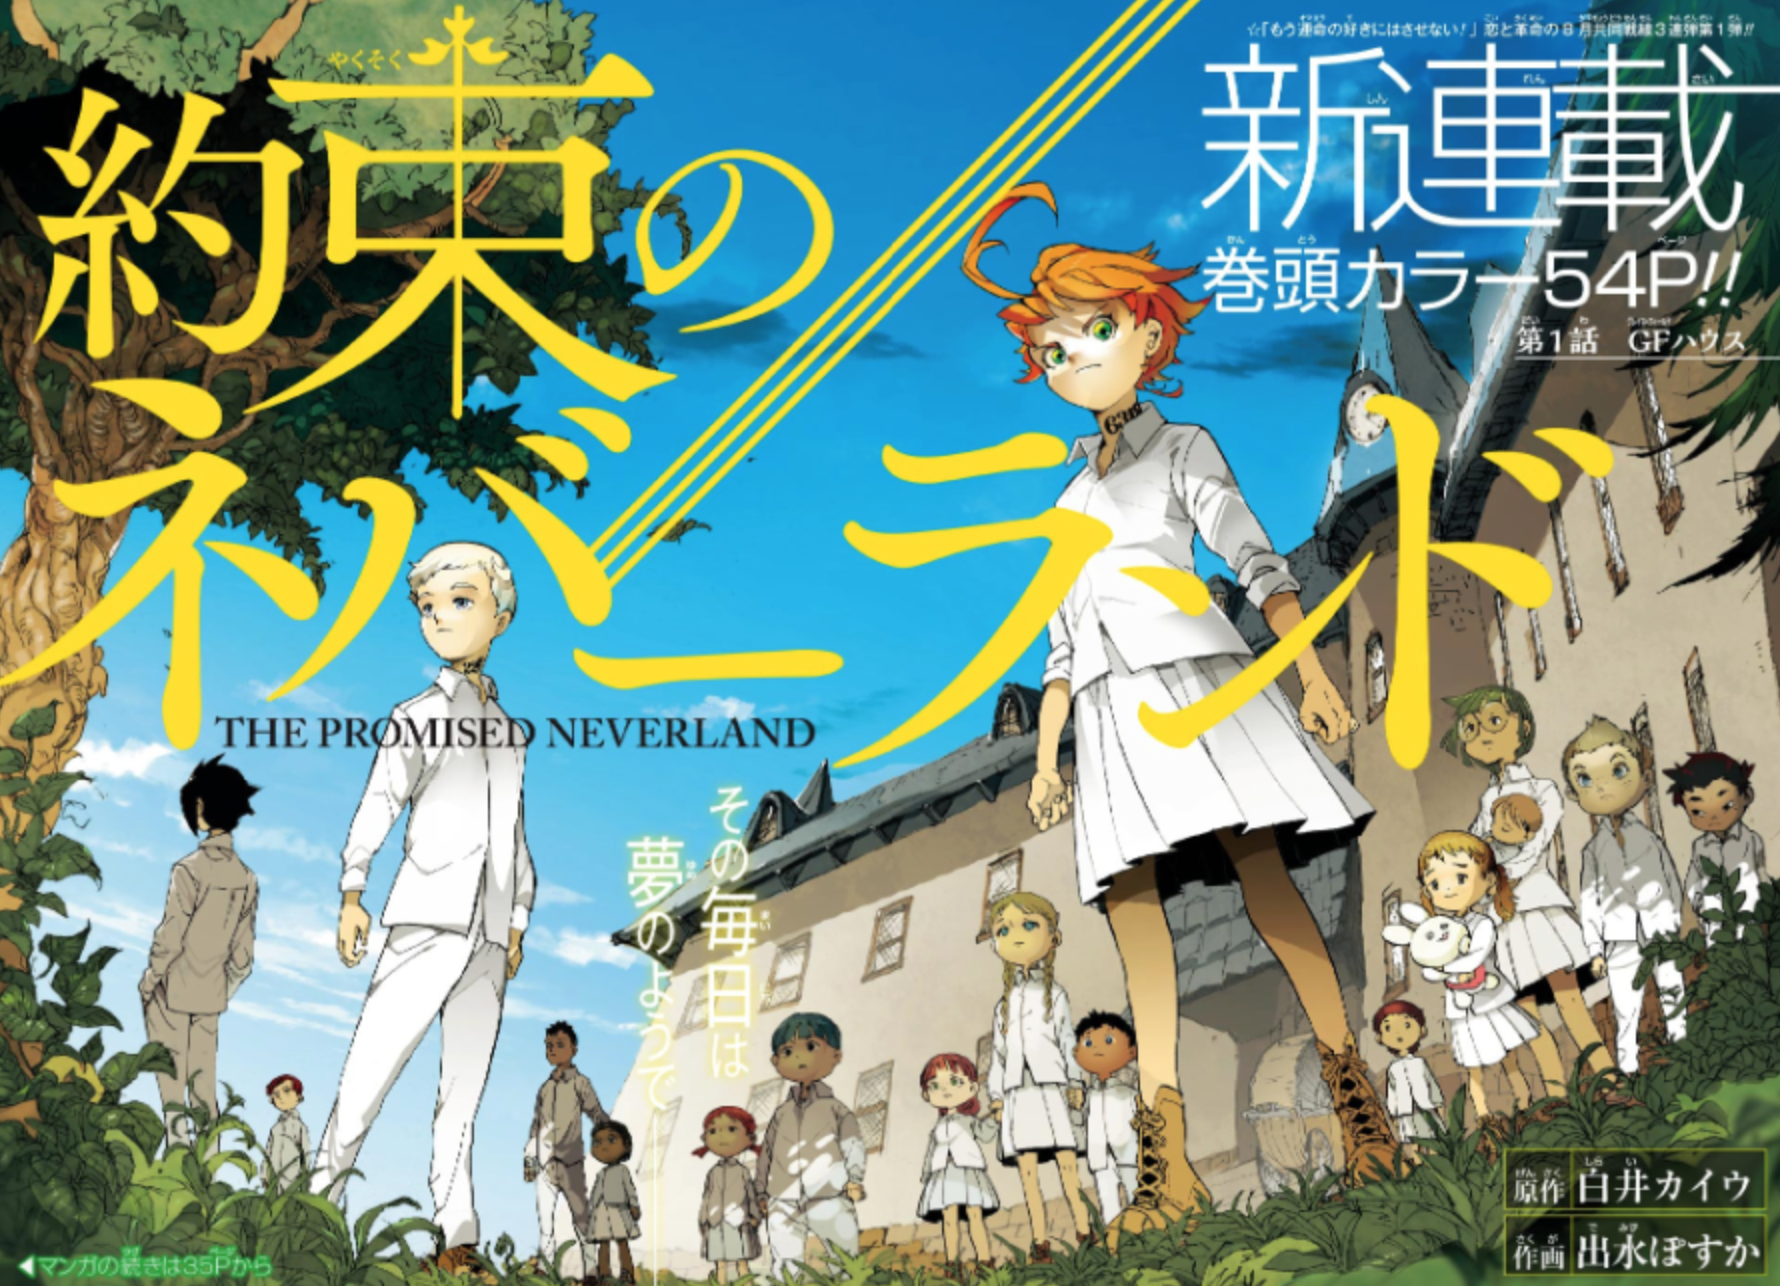 The Promised Neverland to get a Live-Action series by Amazon!